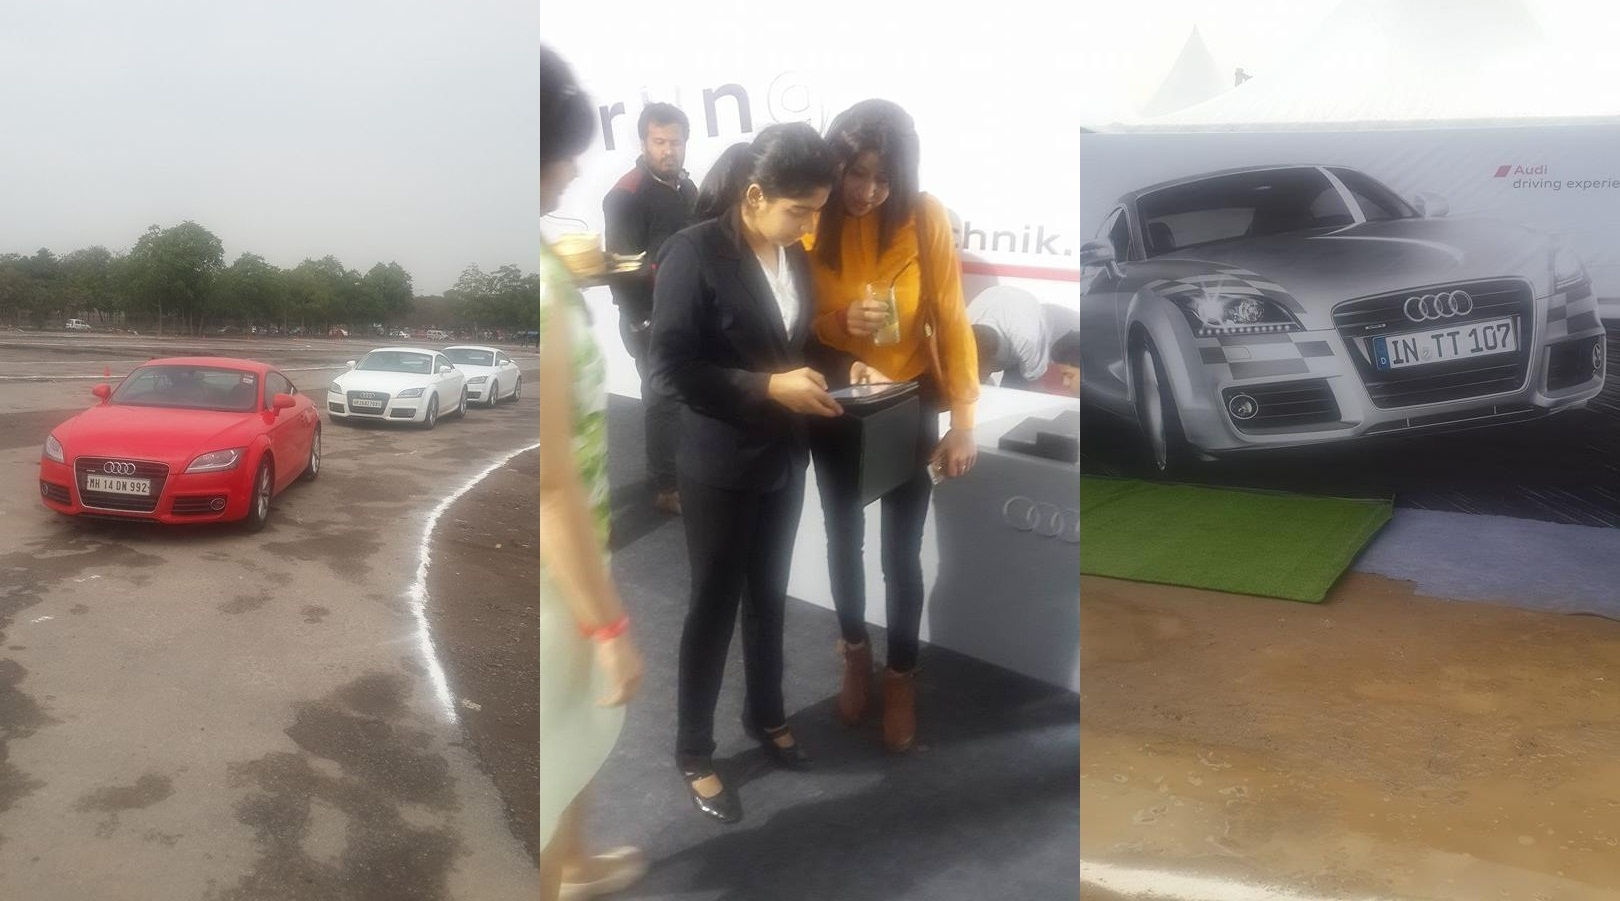 audi women's power drive in new delhi and bangalore - page 200 of 717